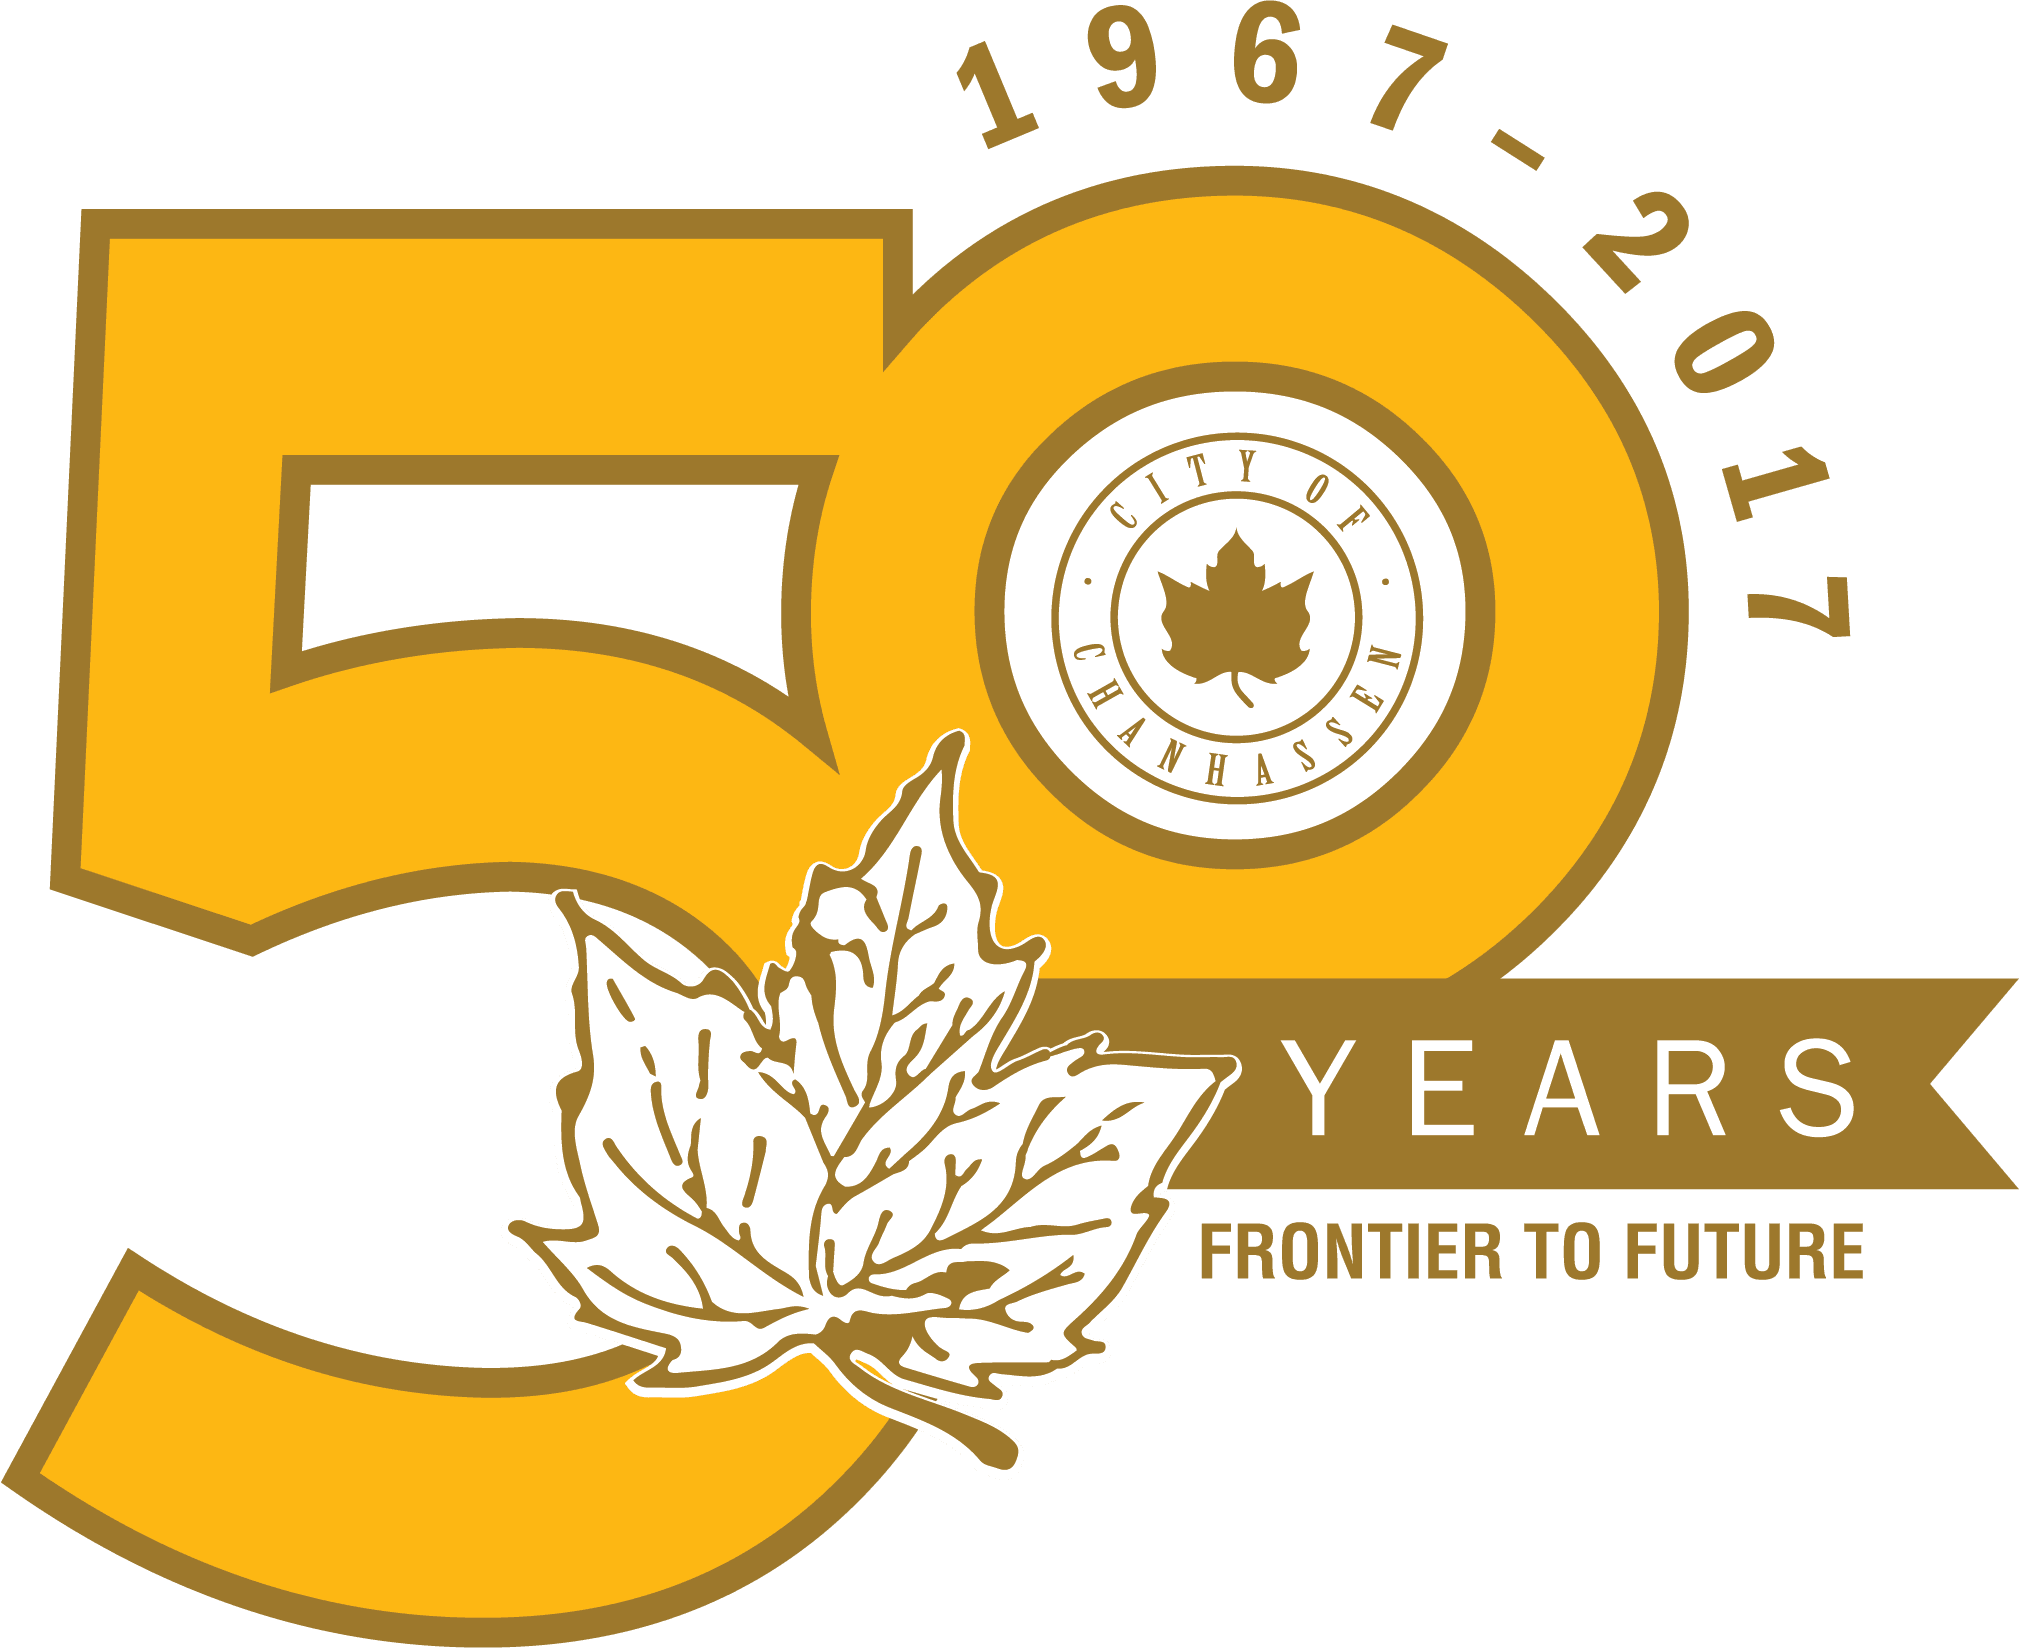 50th Chanhassen Anniversary Logo